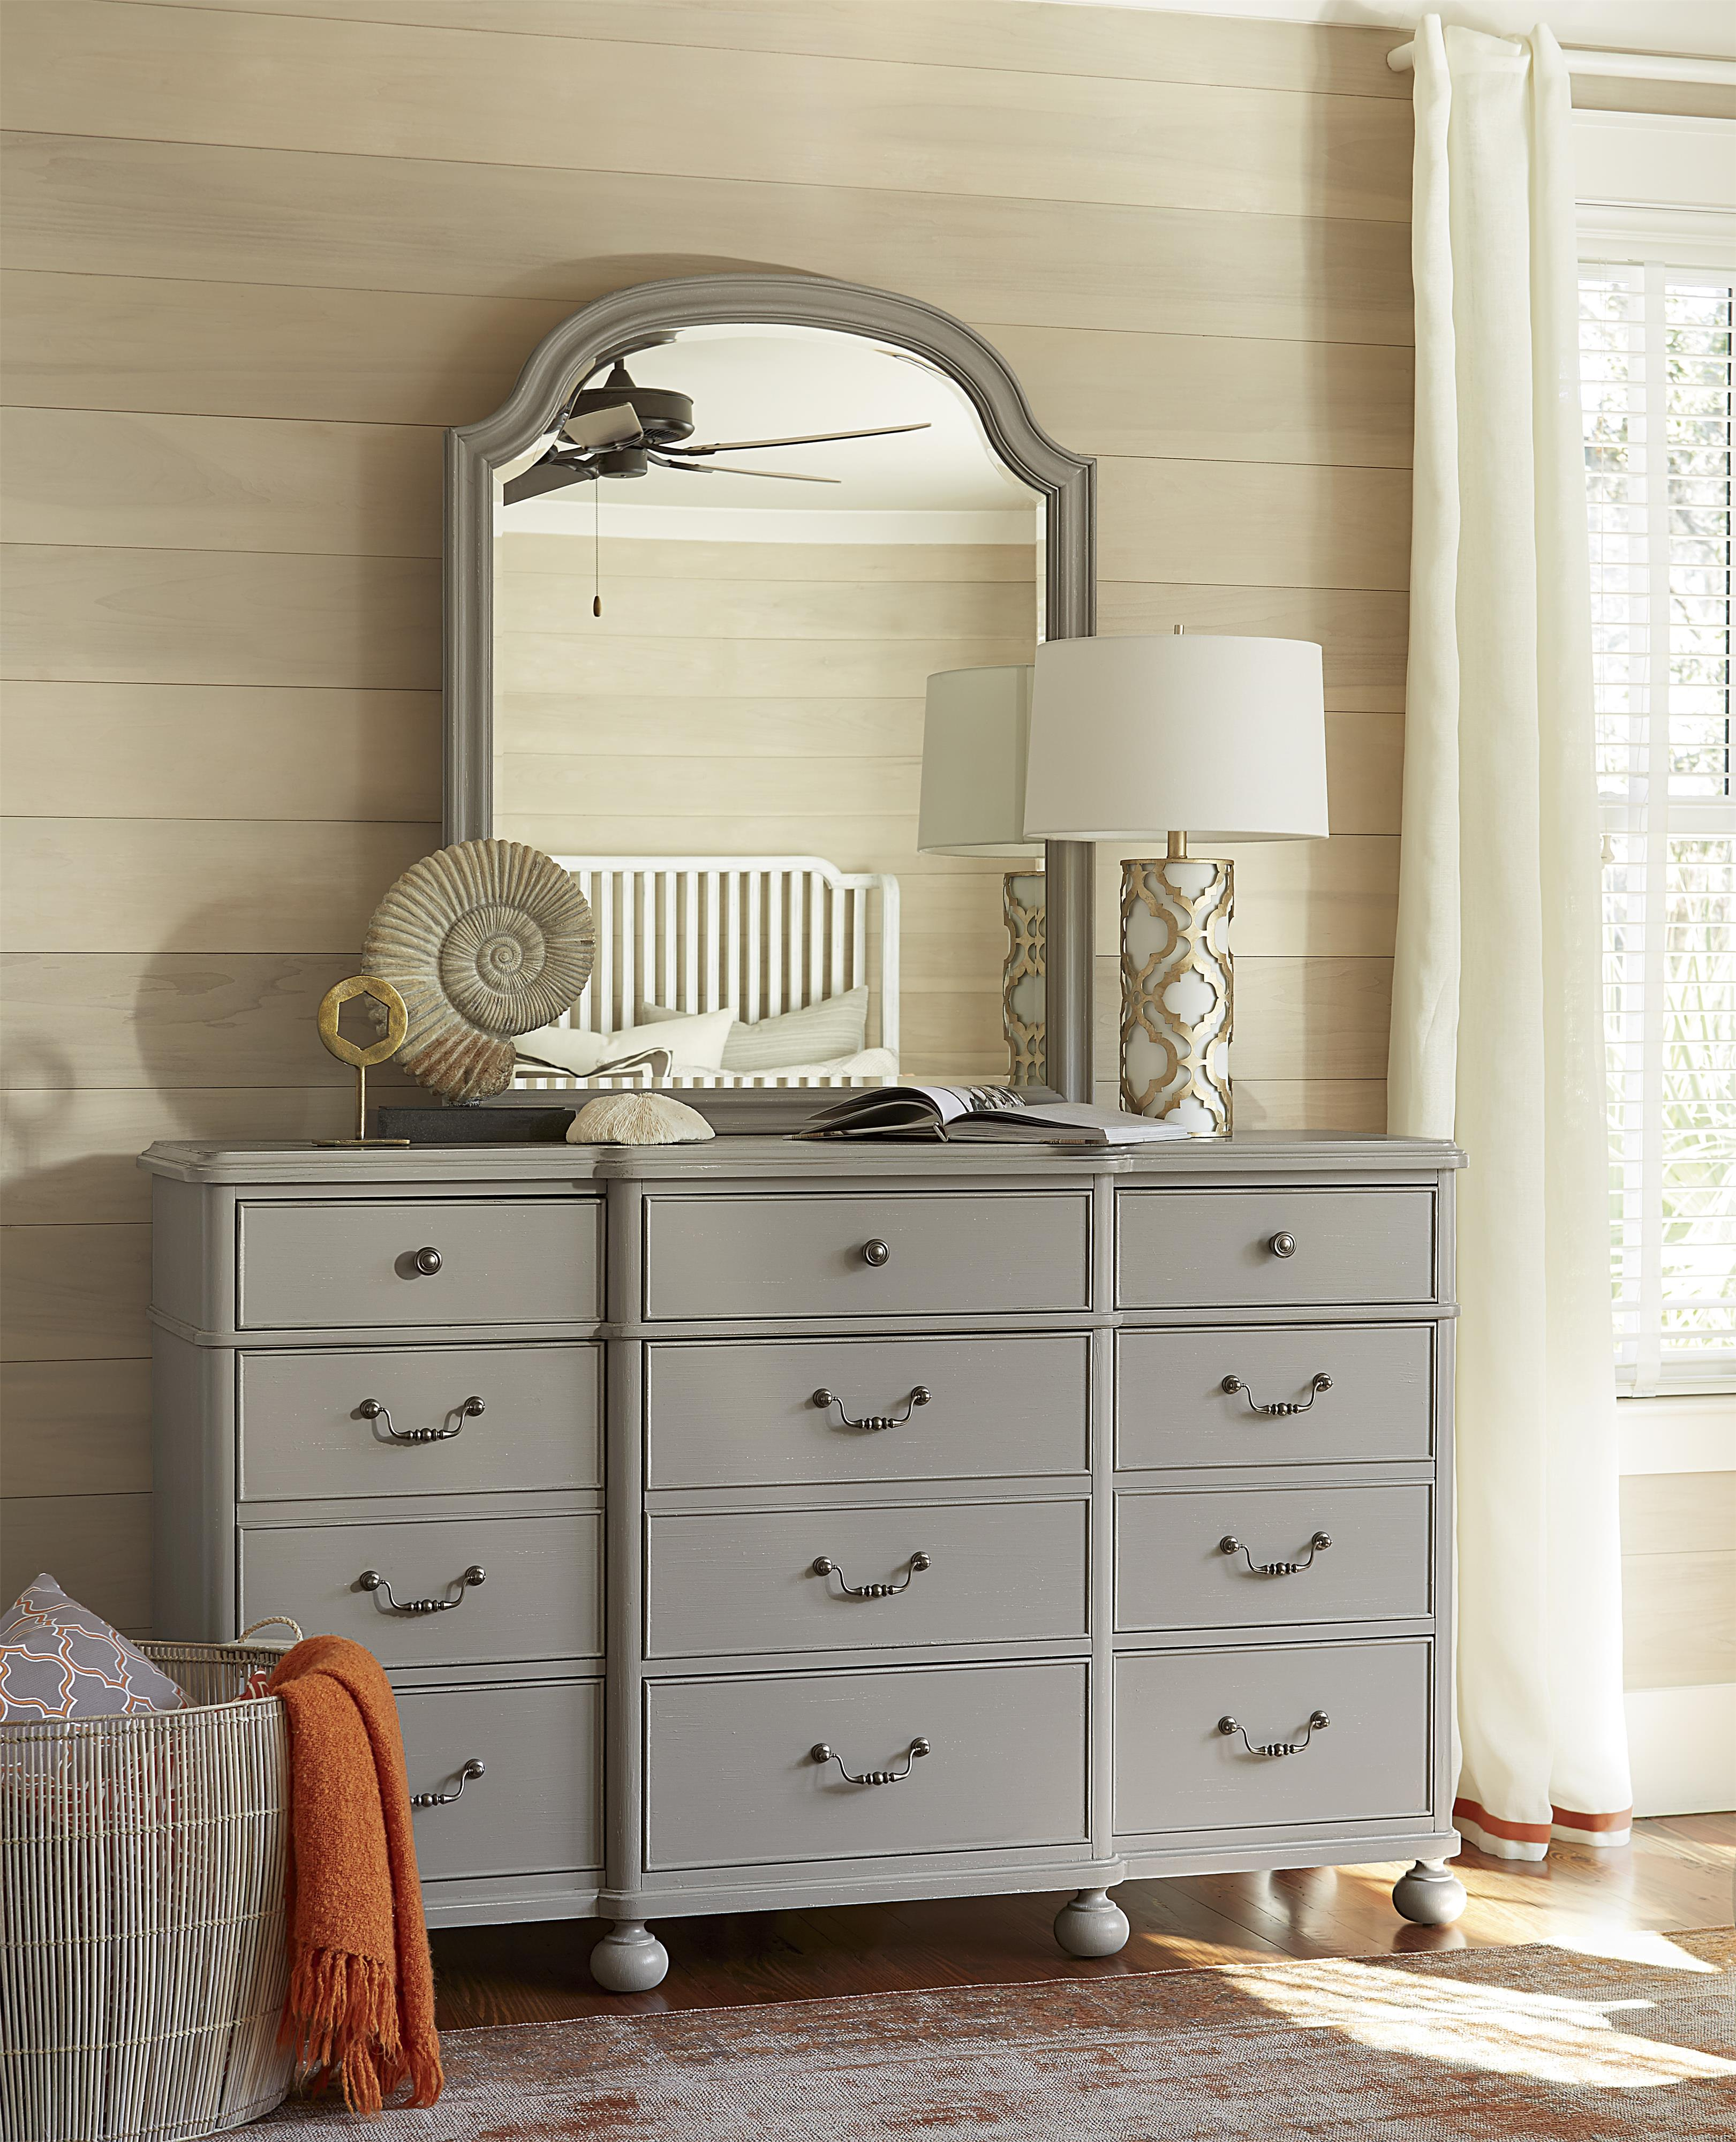 Paula Deen By Universal Dogwood 59904m Mirror With Arched Top Baer 39 S Furniture Dresser Mirrors